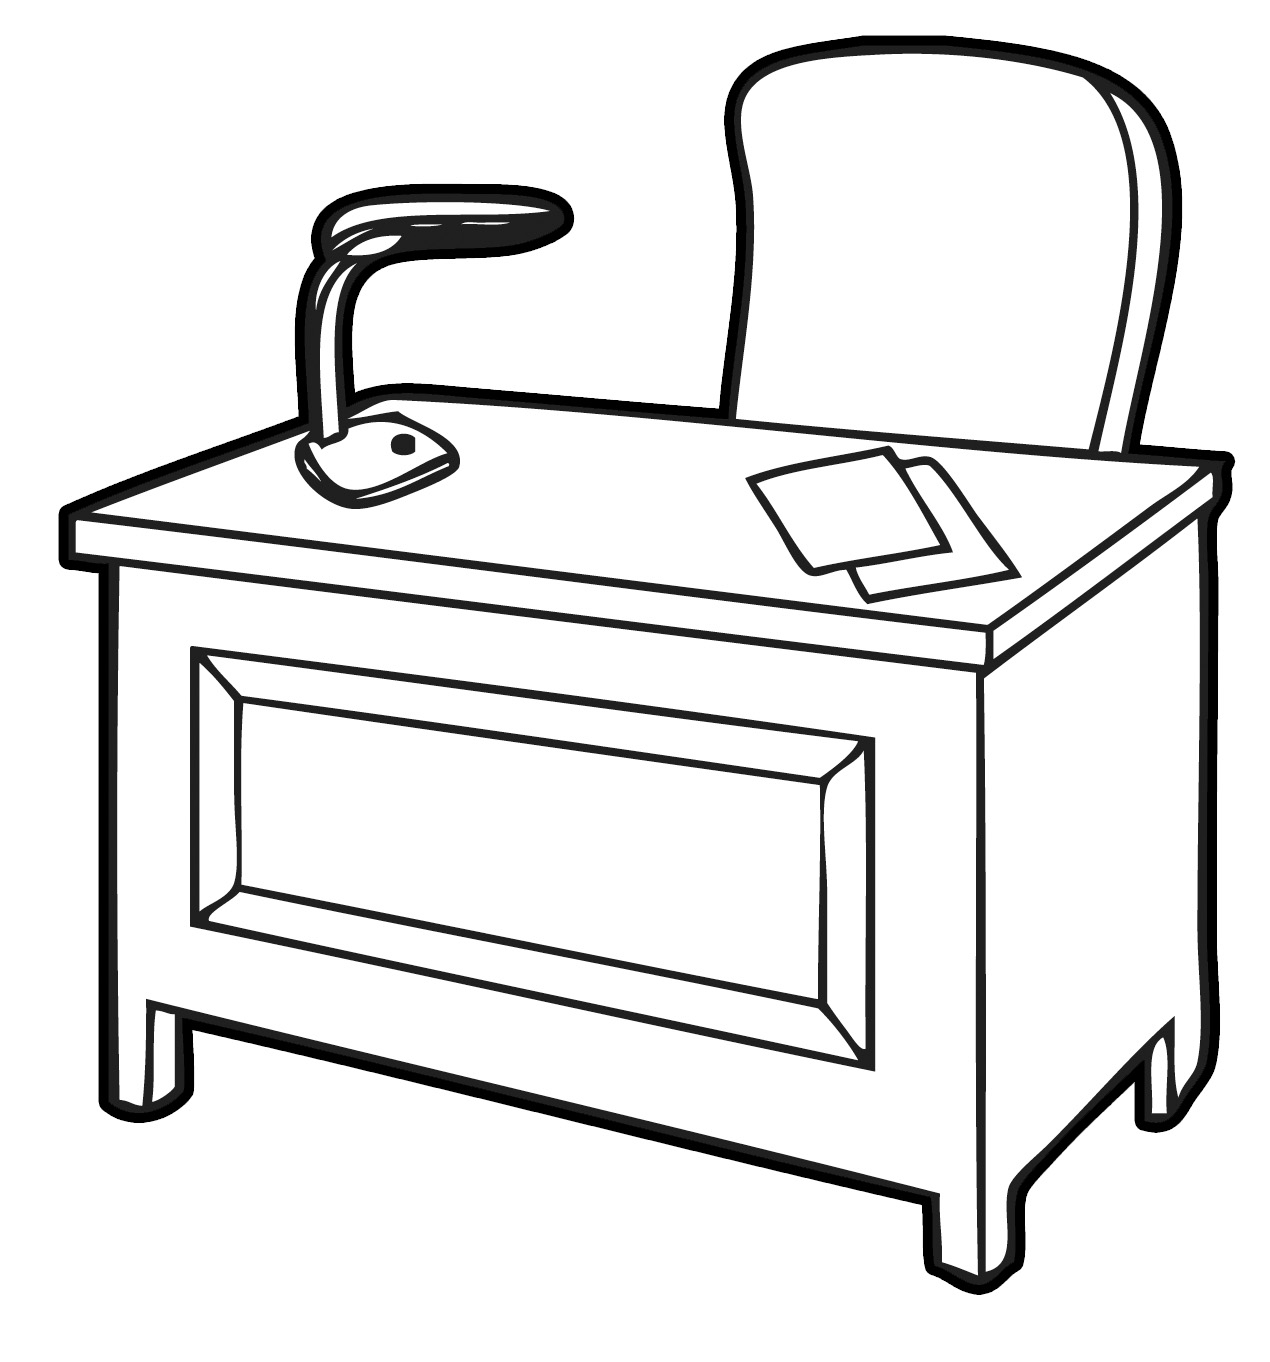 Free Student Desk Clipart Black And White, Download Free.